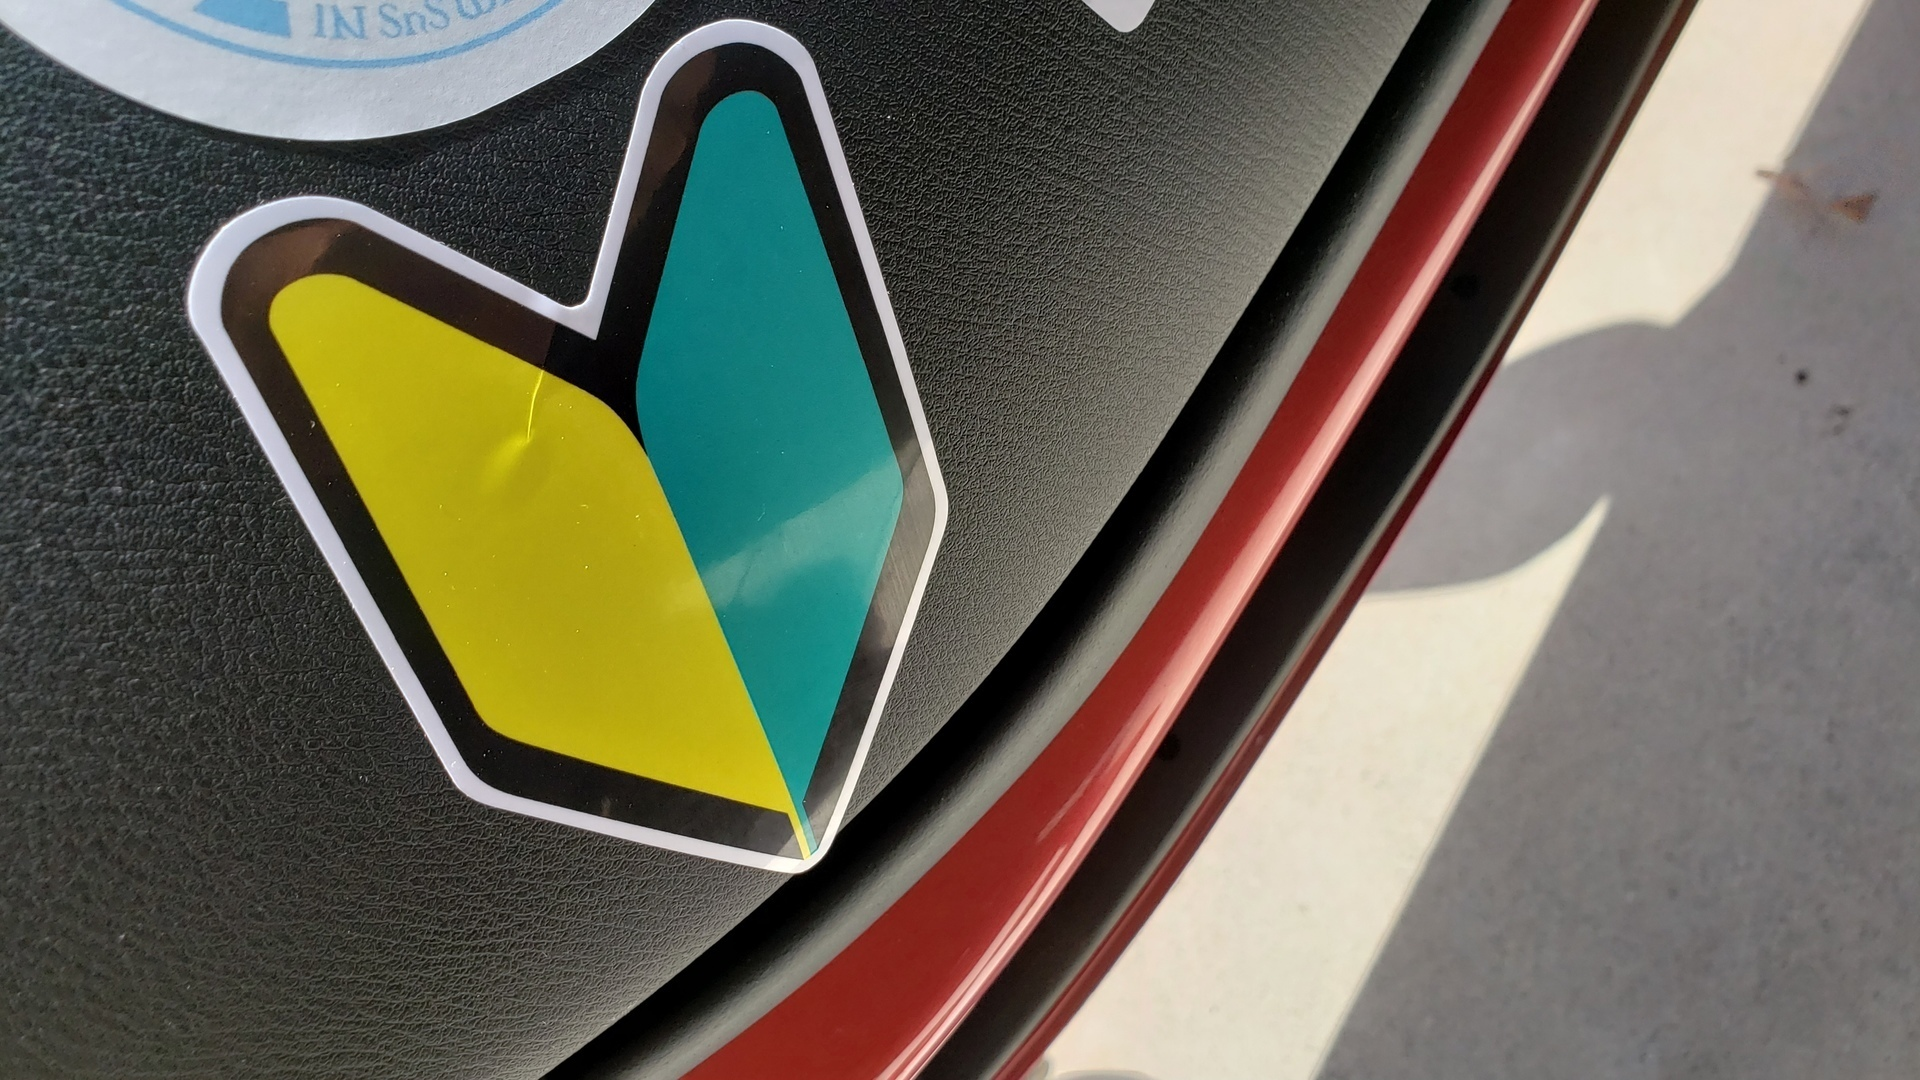 Kenneth's photograph of their Wakaba Mark Japanese Student Driver JDM Arrow Symbol Sticker